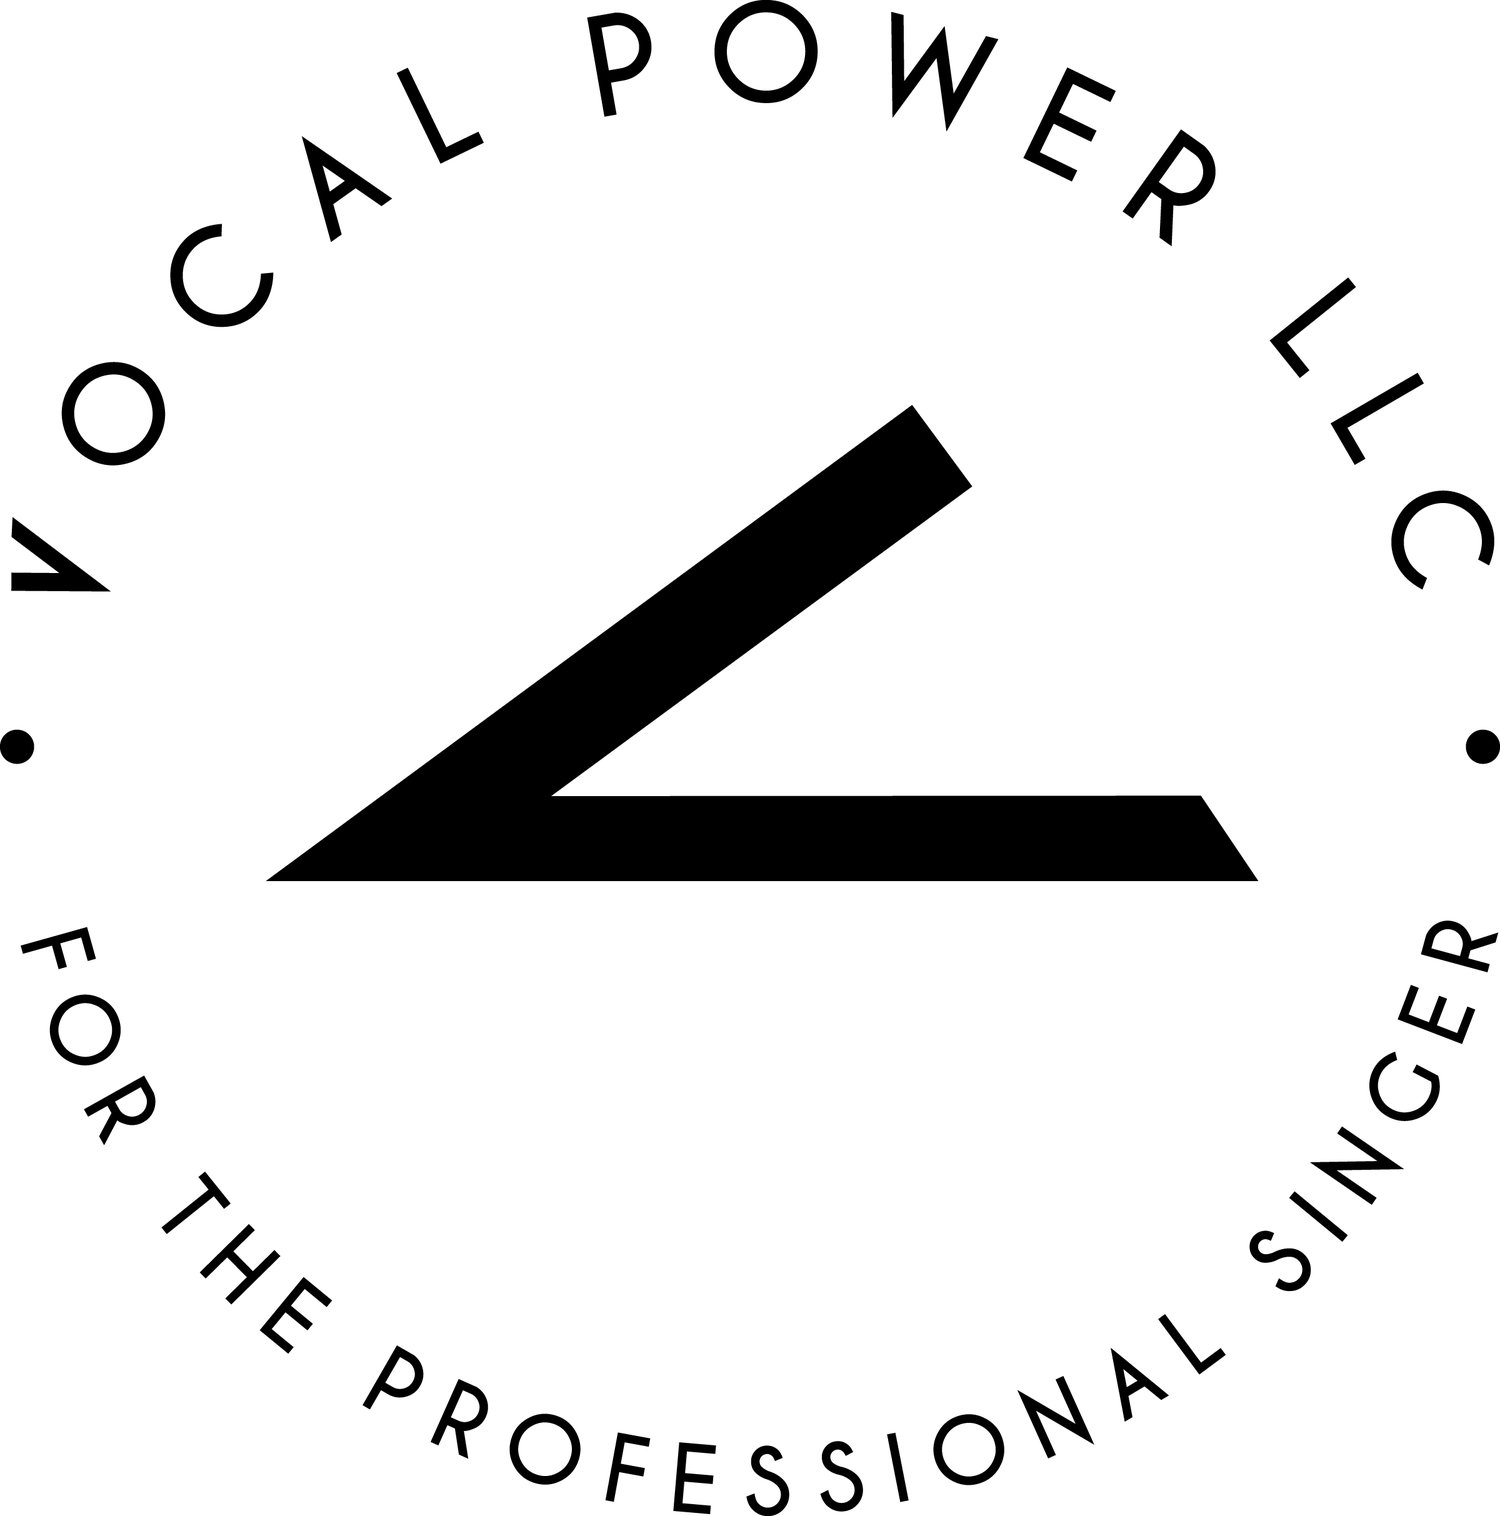 Vocal Power LLC